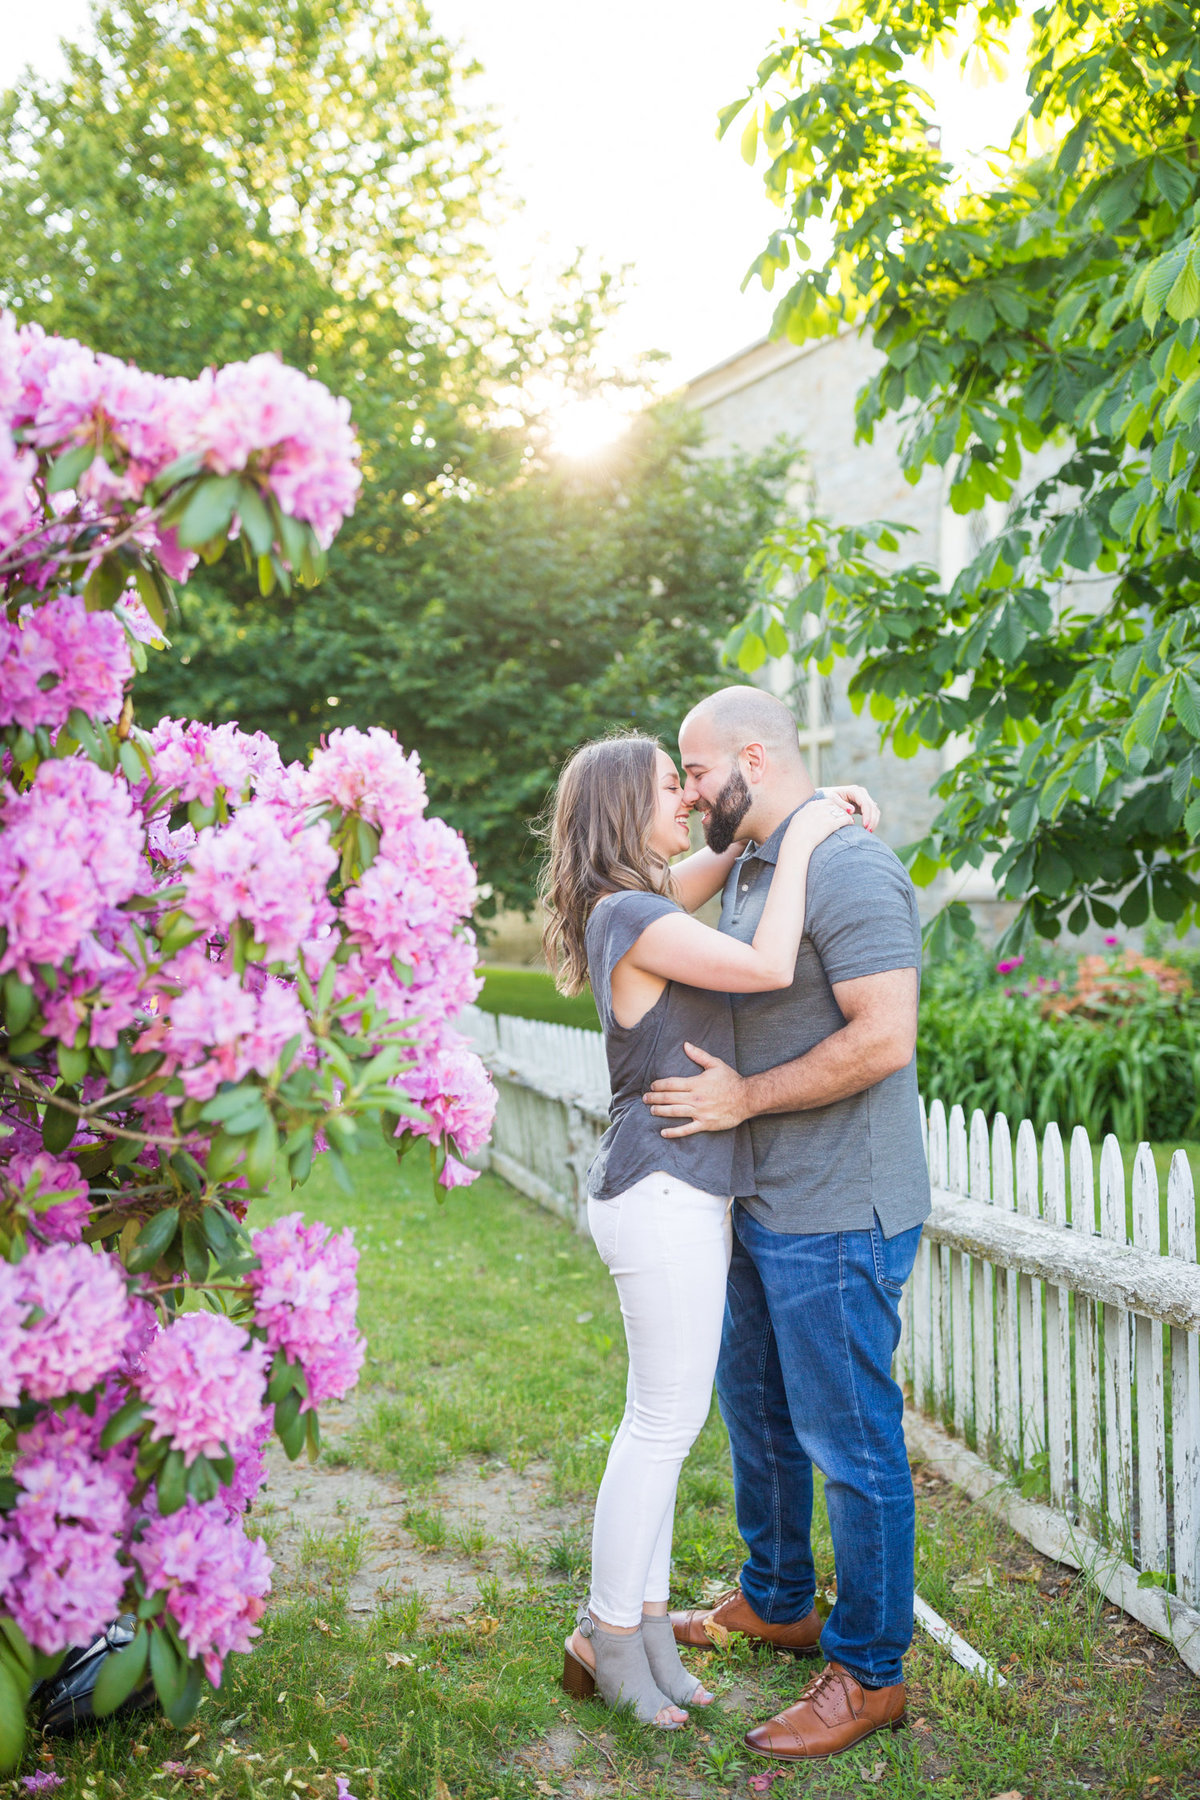 Laura-Klacik-Photography-Engagement-Photos-15